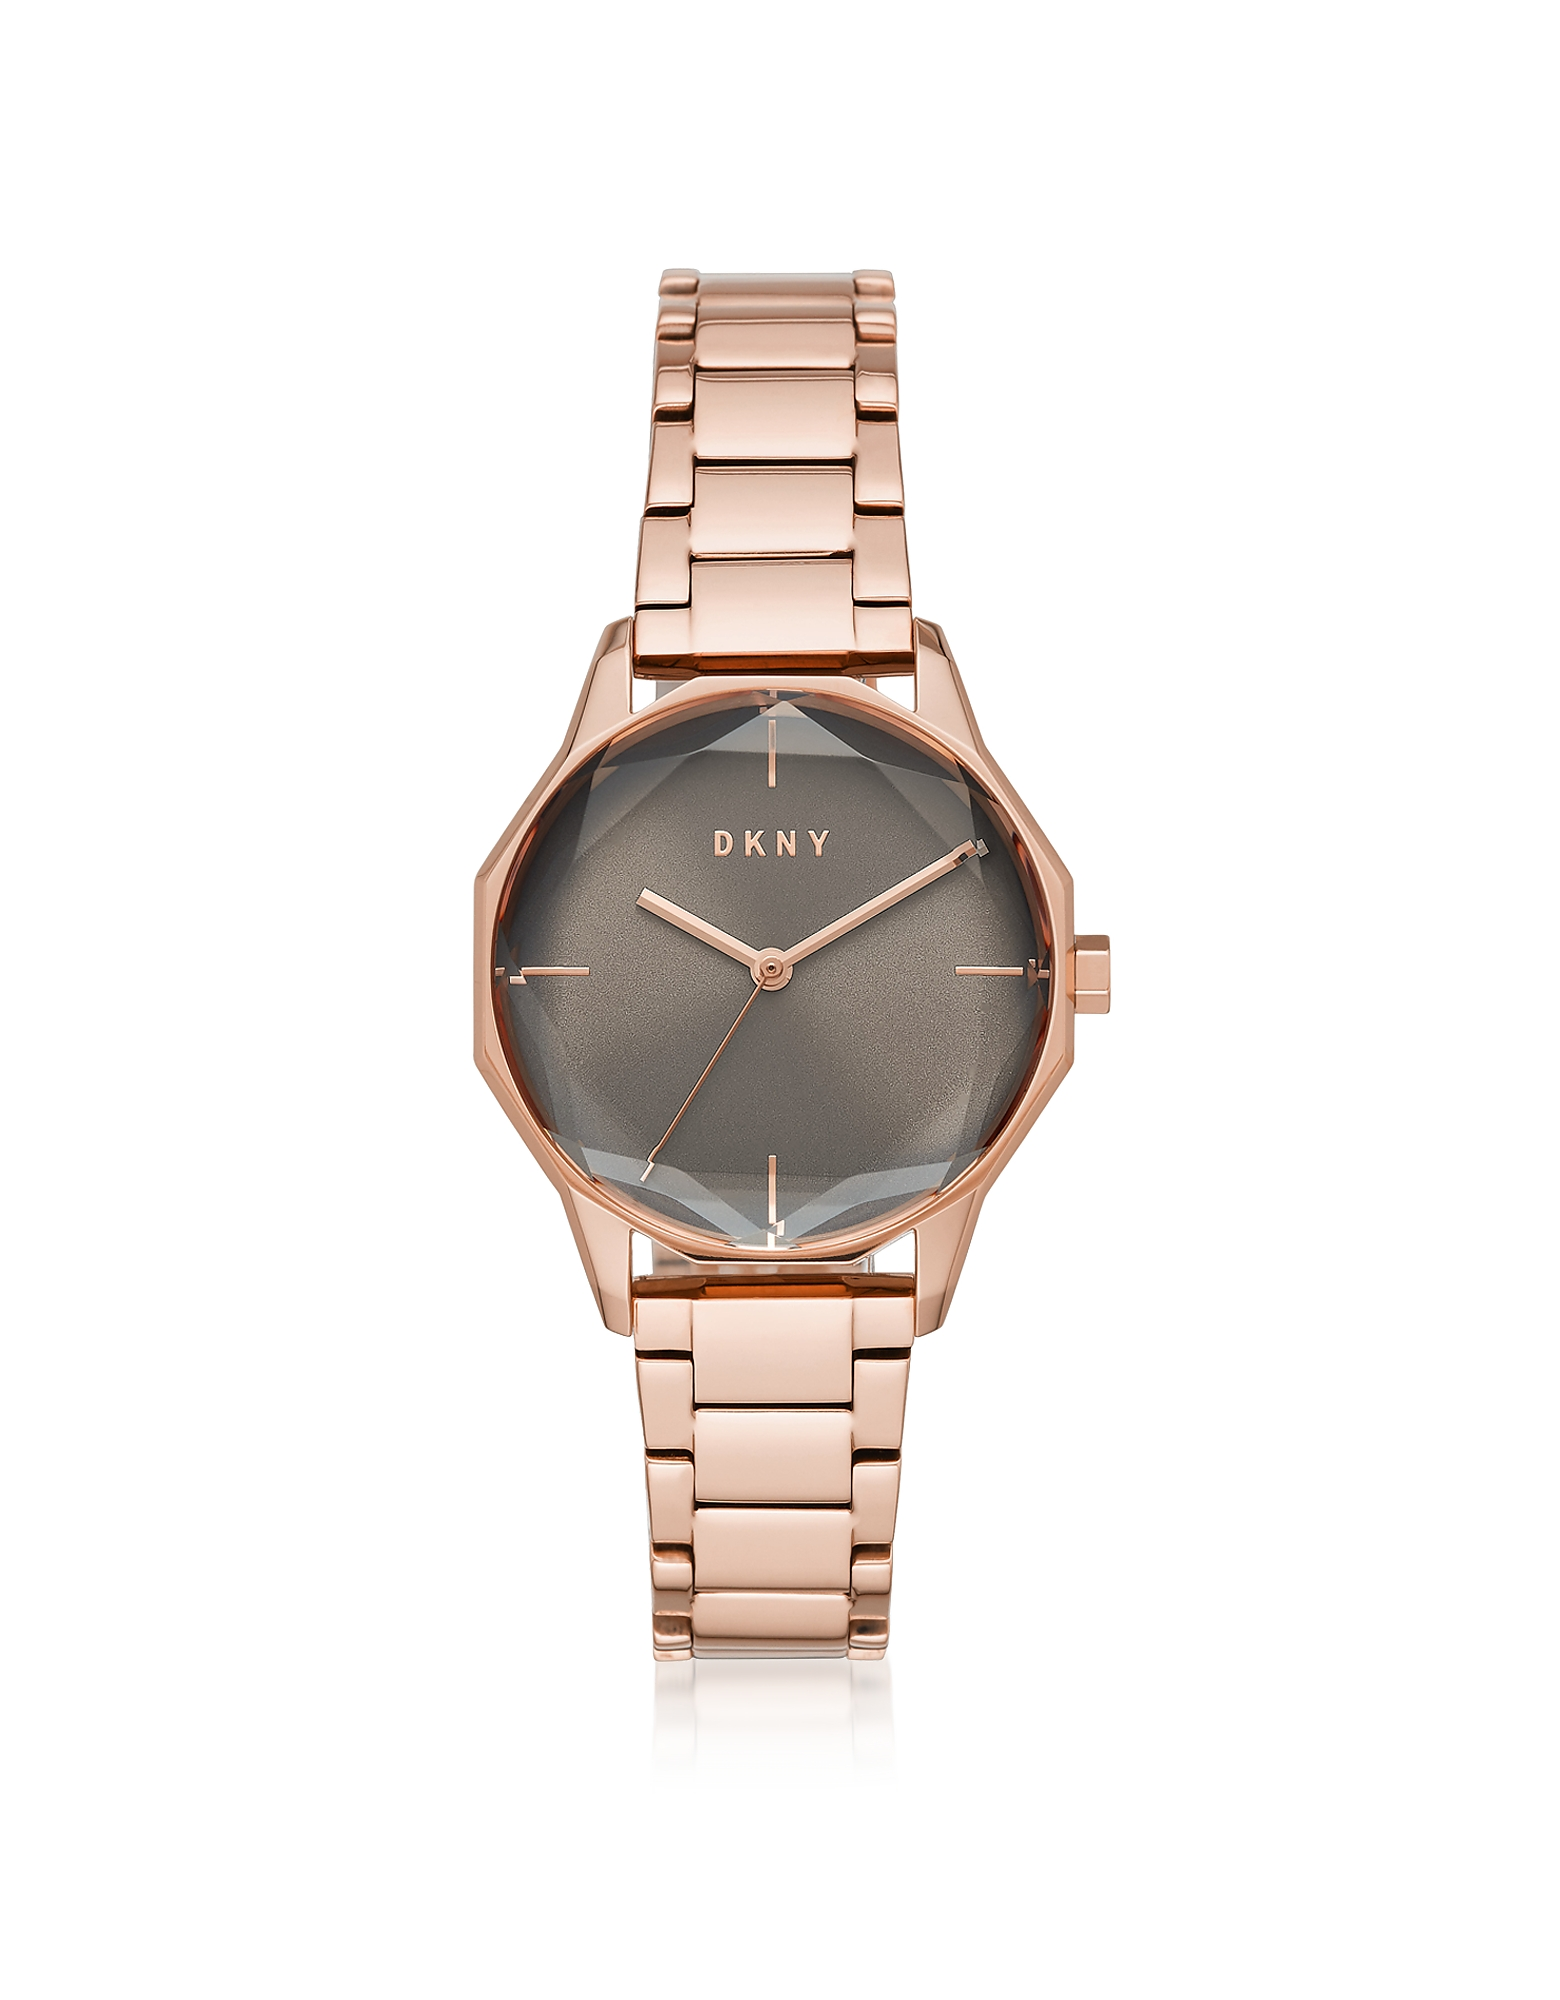 DKNY  Women's Watches Cityspire Round Rose Gold Tone Stainless Steel Watch